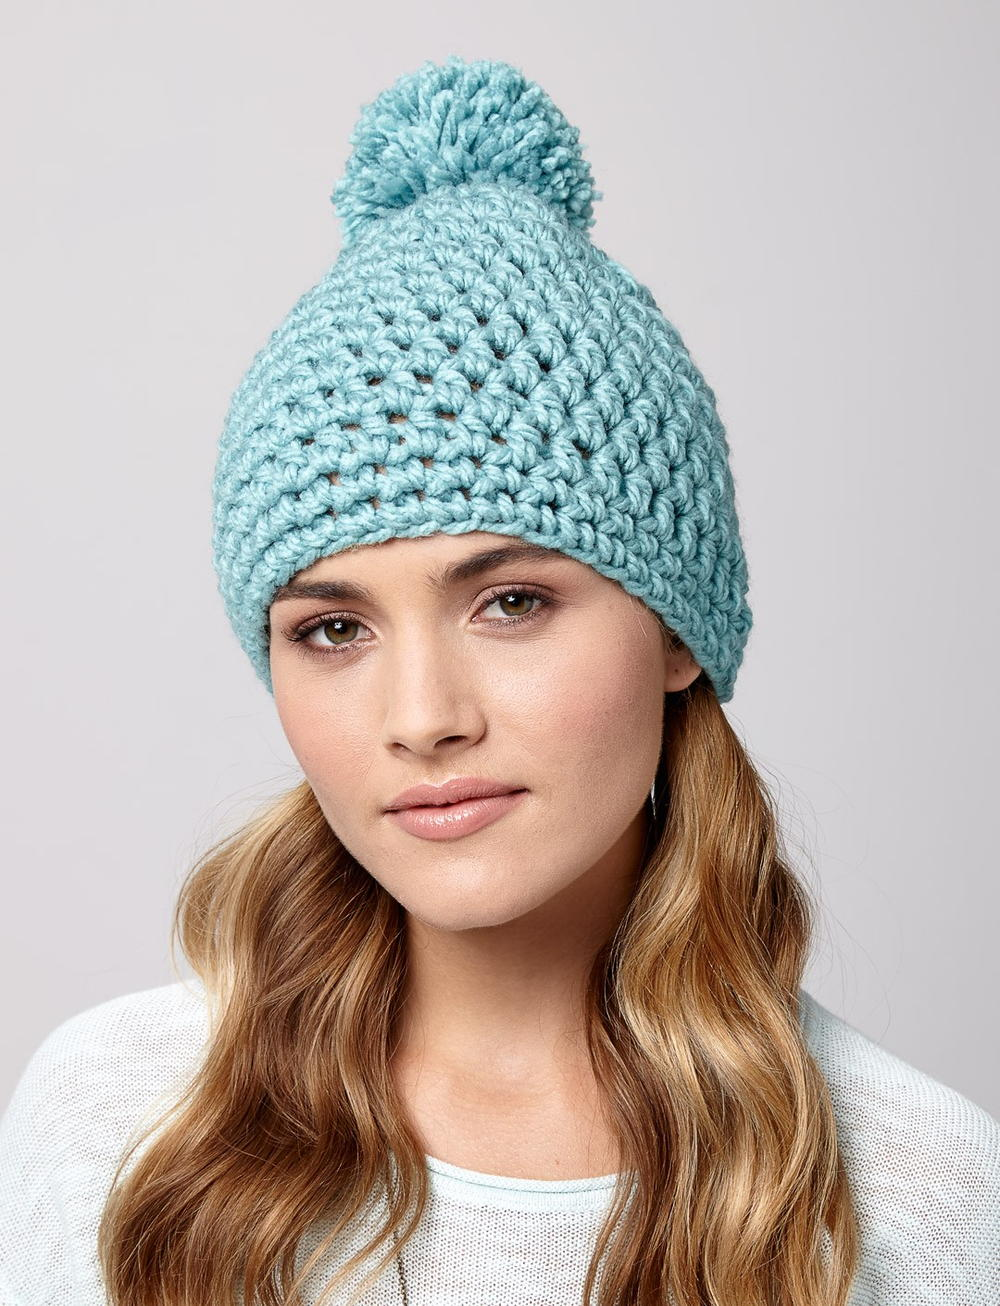 Crochet Patterns With Super Fine Yarn : Snow Drift Crochet Hat AllFreeCrochet.com